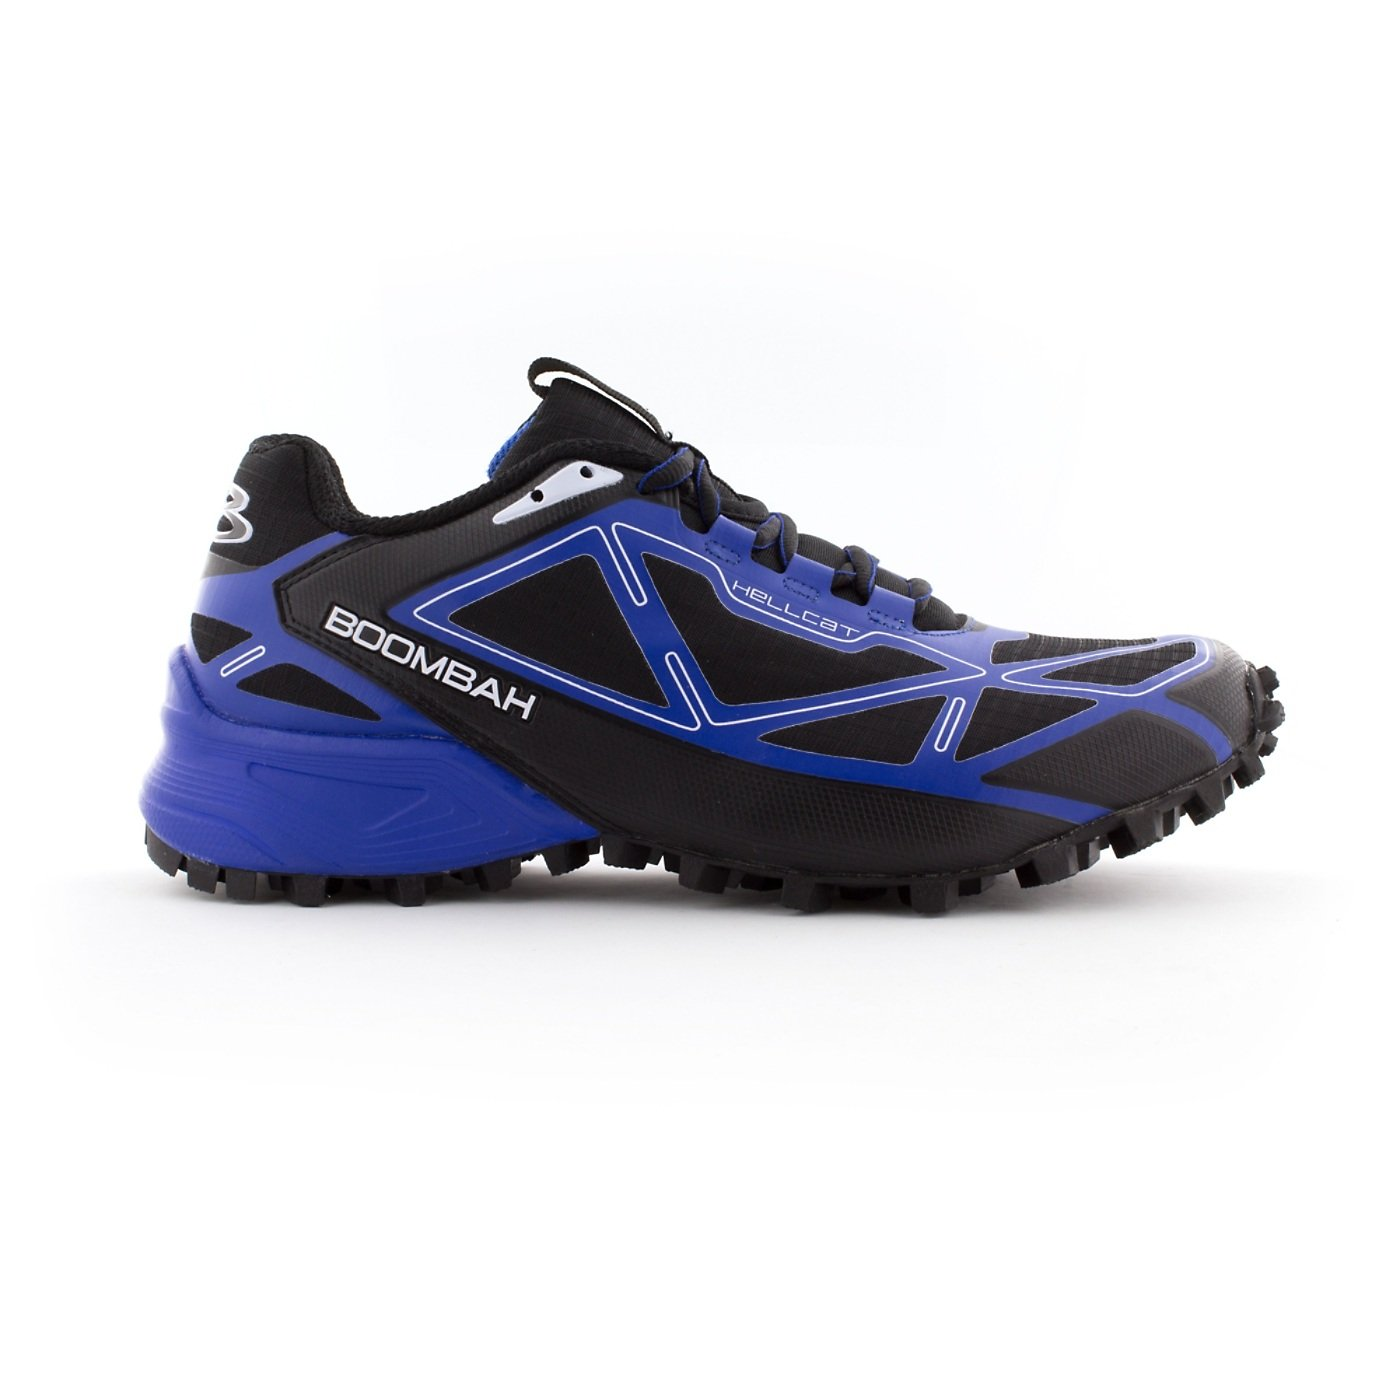 Boombah Men's Hellcat Trail Shoe - 14 Color Options - Multiple Sizes B073X6TNH2 14|Black/Royal